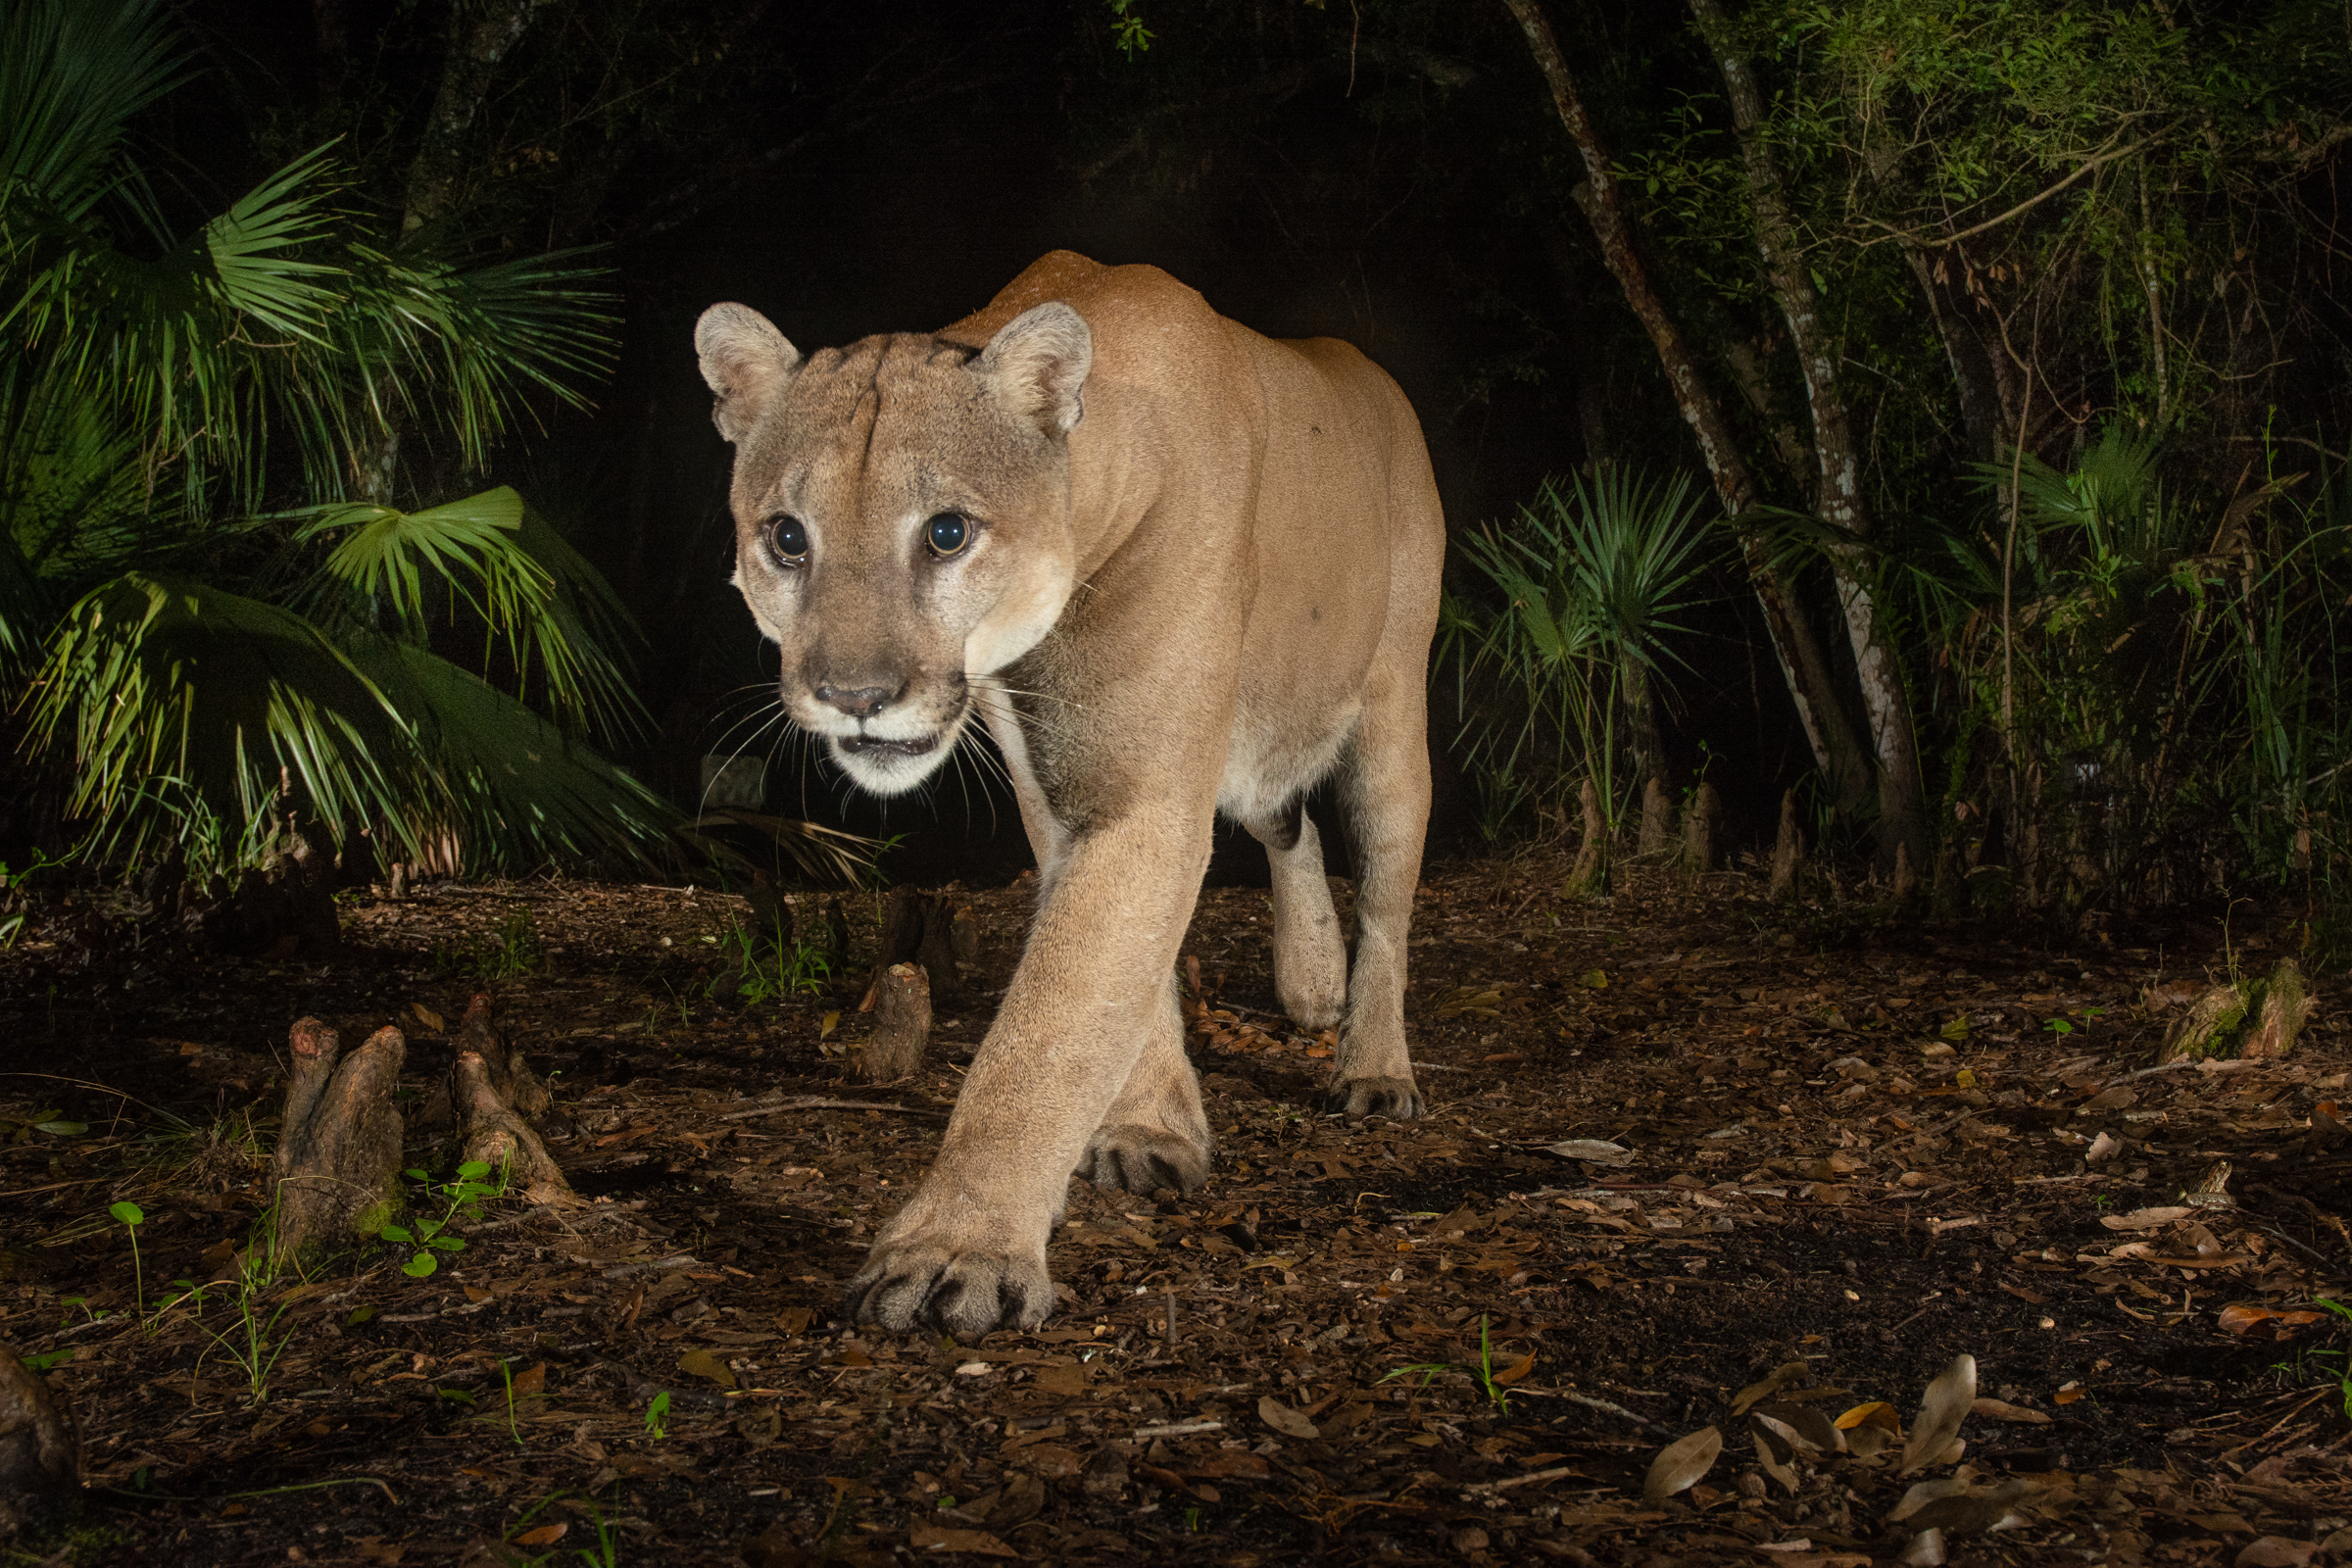 A male Florida panther triggers a camera trap at Babcock Ranch, which is the site of the first female panther documented north of the Southern Everglades since 1973. Continued northward recovery of the endangered Florida panther depends largely on the conservation of ranches throughout Peace River Valley, Northern Everglades, and beyond.